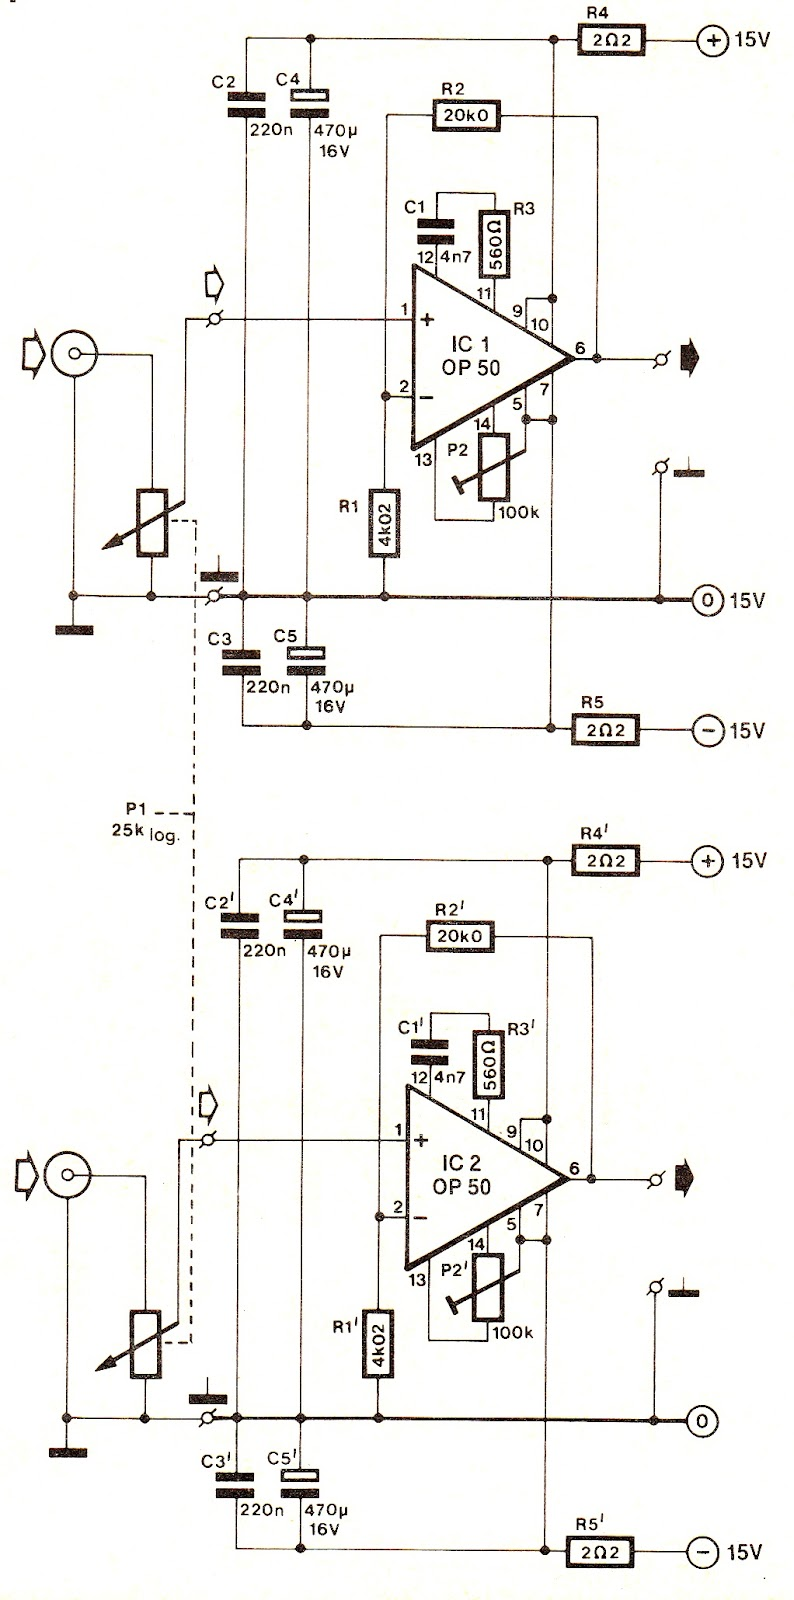 medium resolution of constant electronic load circuit basiccircuit circuit diagram constant electronic load circuit basiccircuit circuit diagram